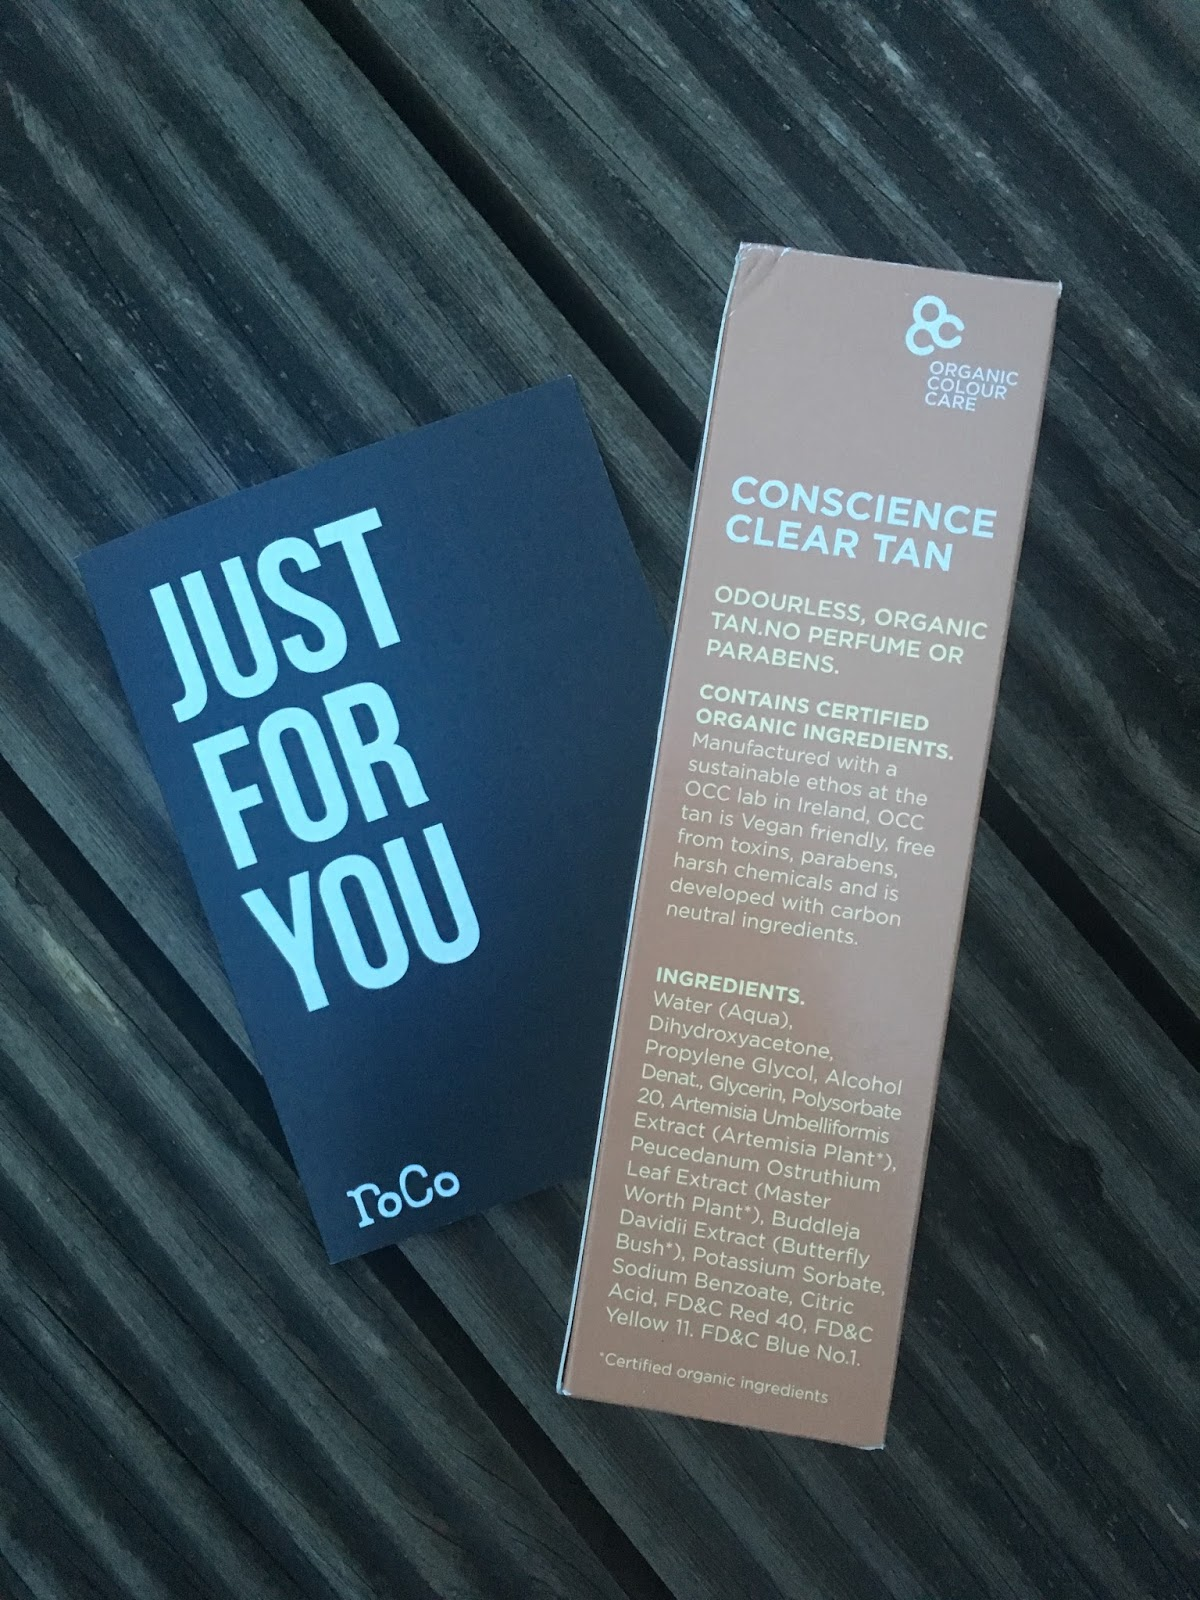 Guest Post Reviewing The Light Shade Of Conscience Clear Tan